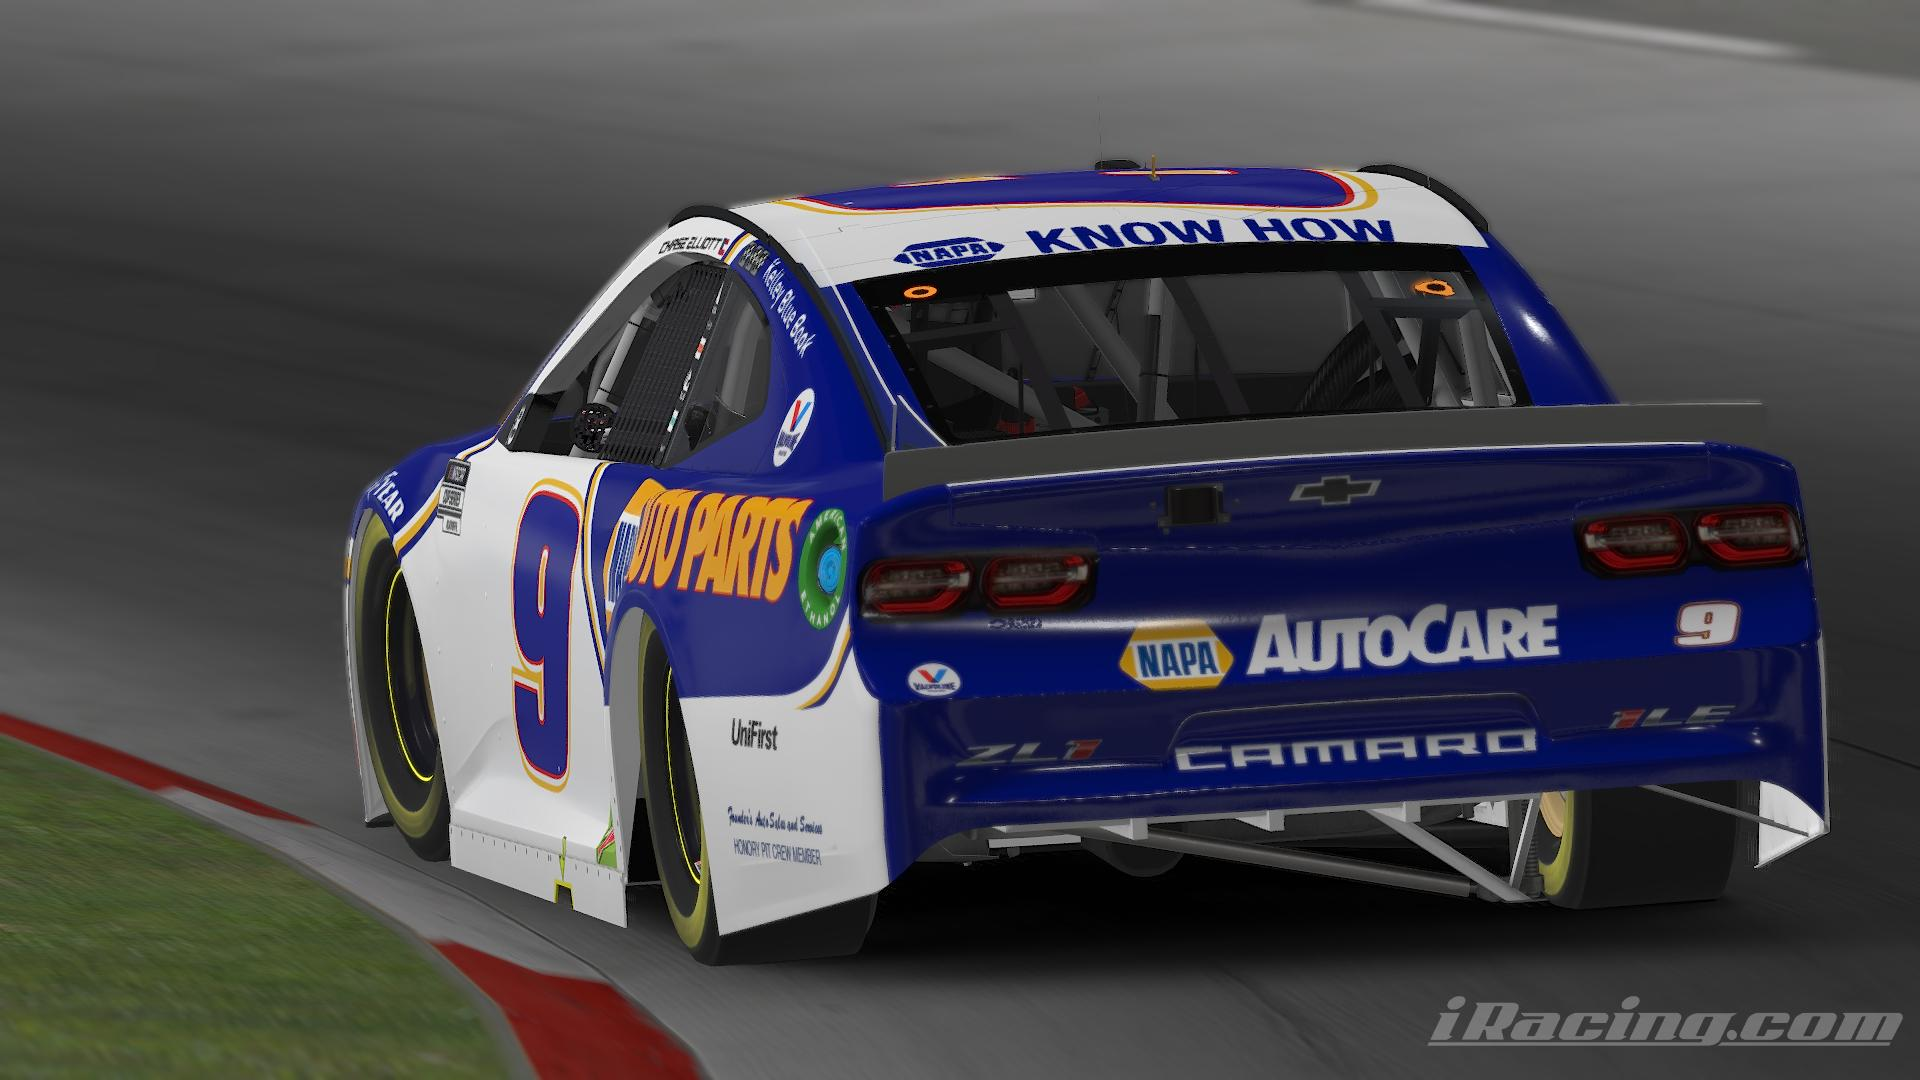 Preview of Chase Elliott Martinsville 2020 No Number by Alexander L Russell